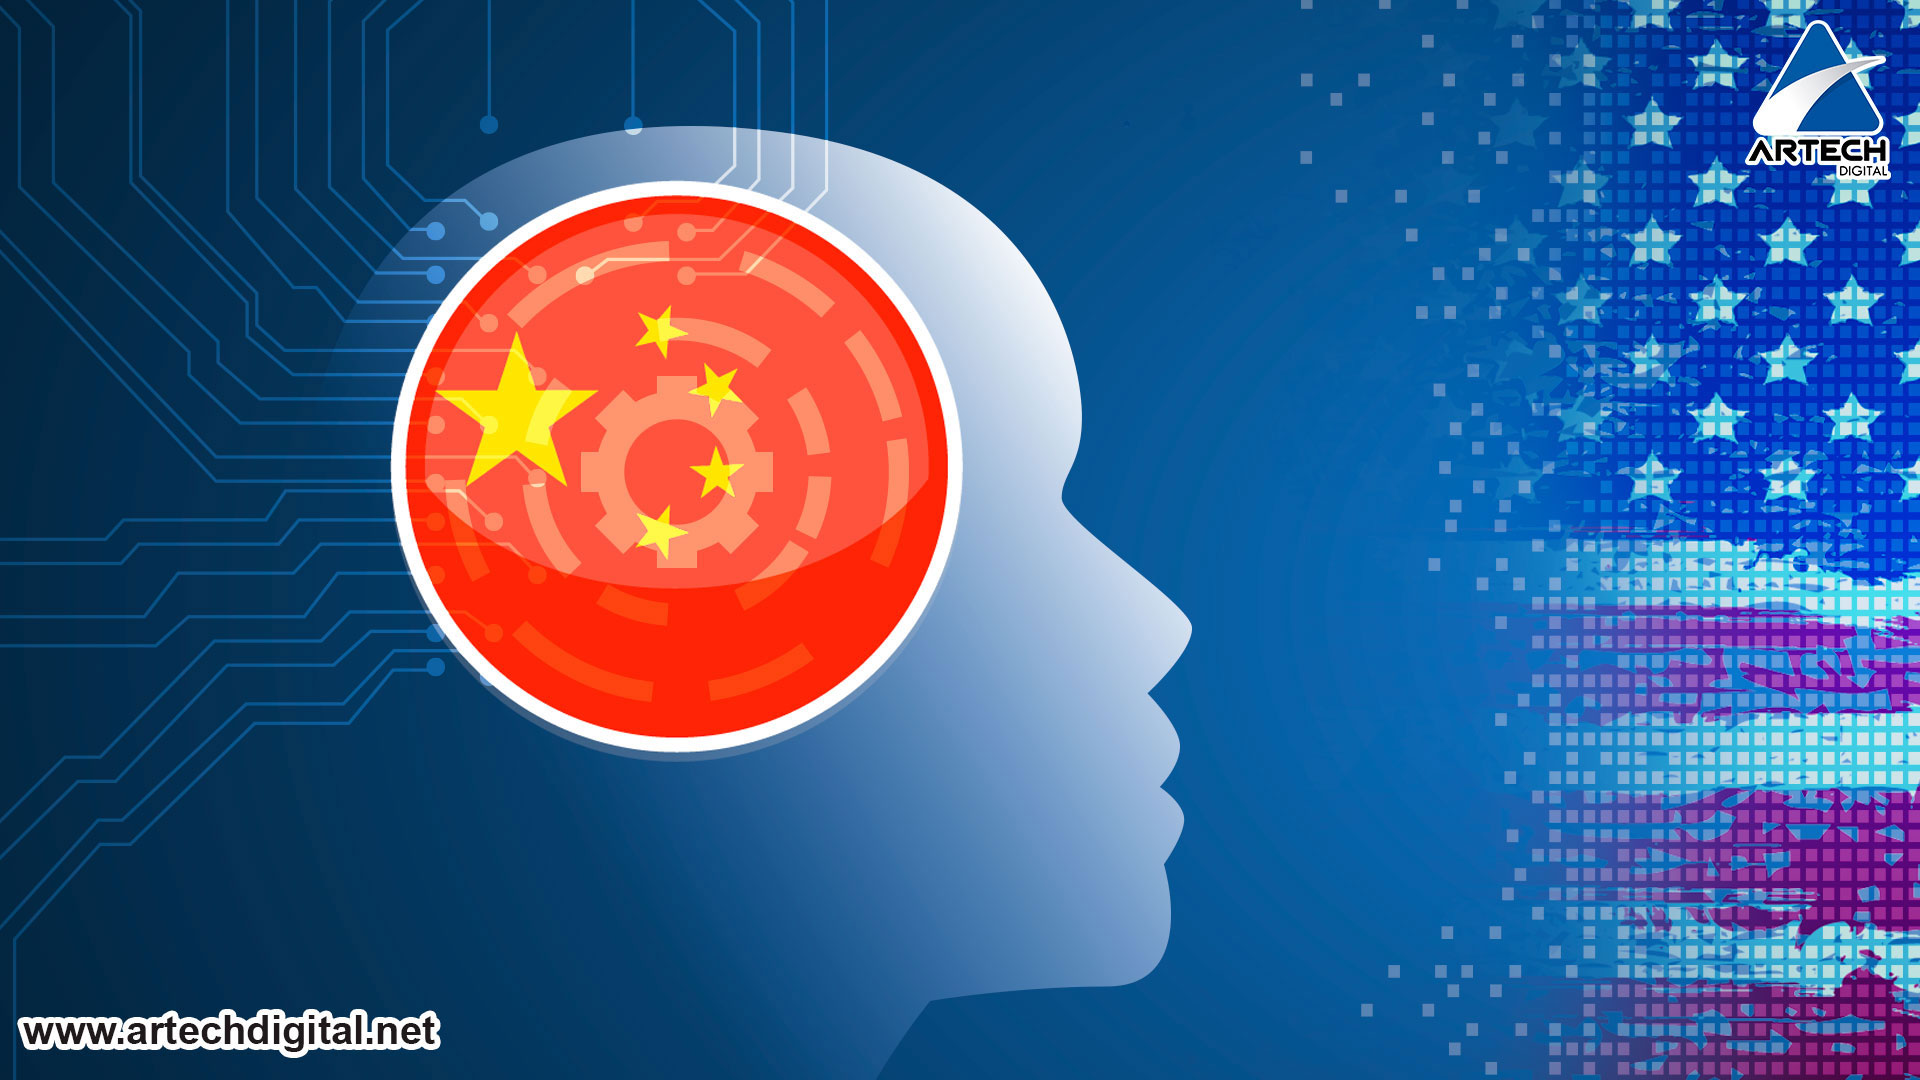 China derrota a los EE.UU. en Inteligencia Artificial según el Instituto Allen